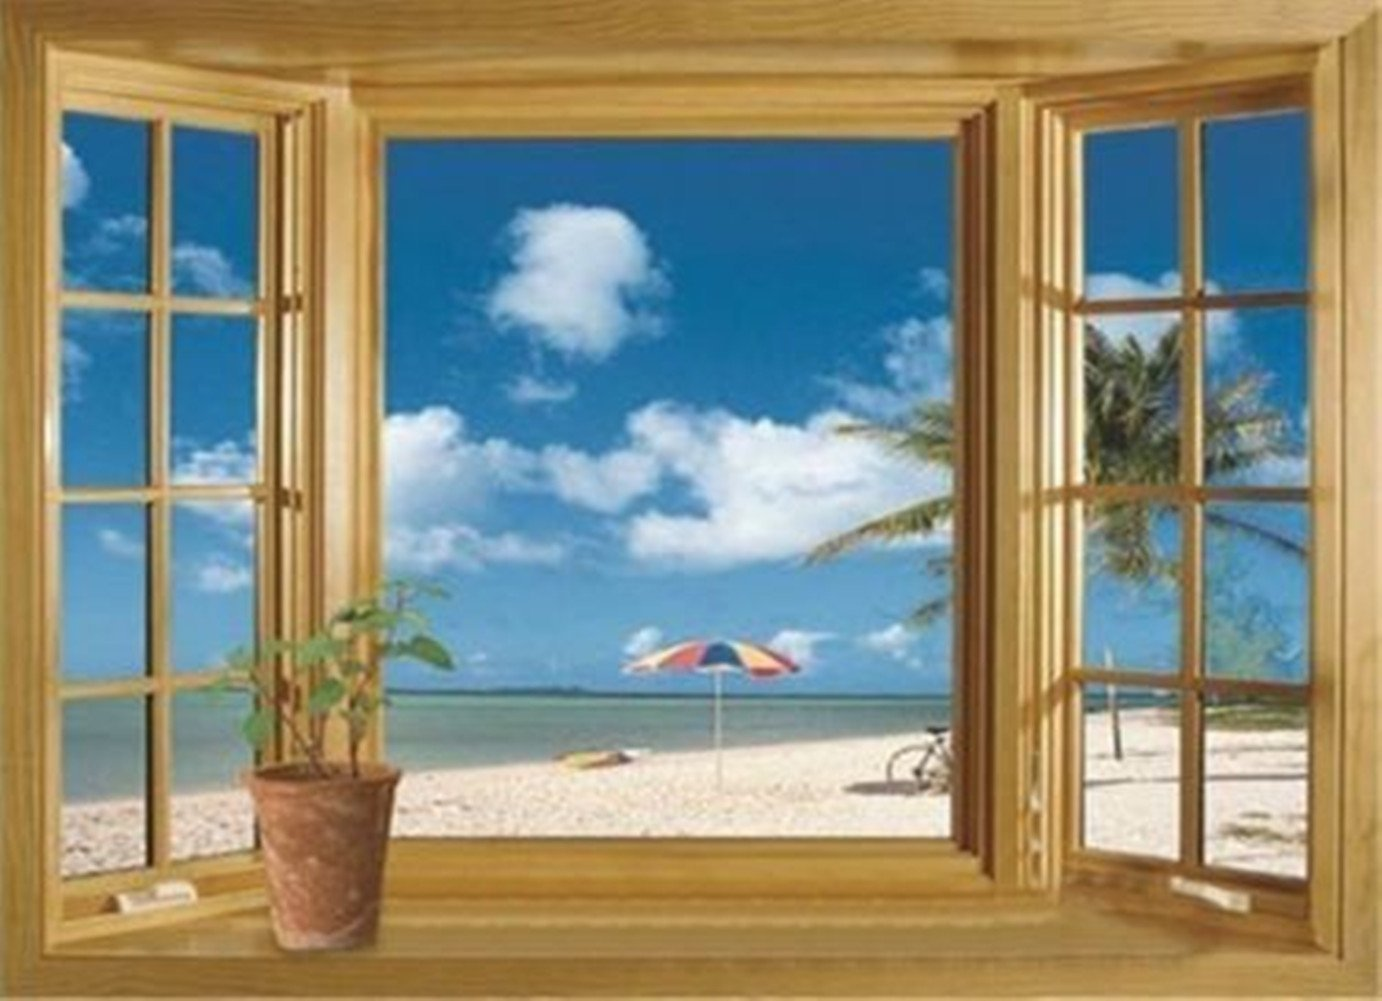 Amazon Com Wall Sticker Hatop 3d Window View Removable